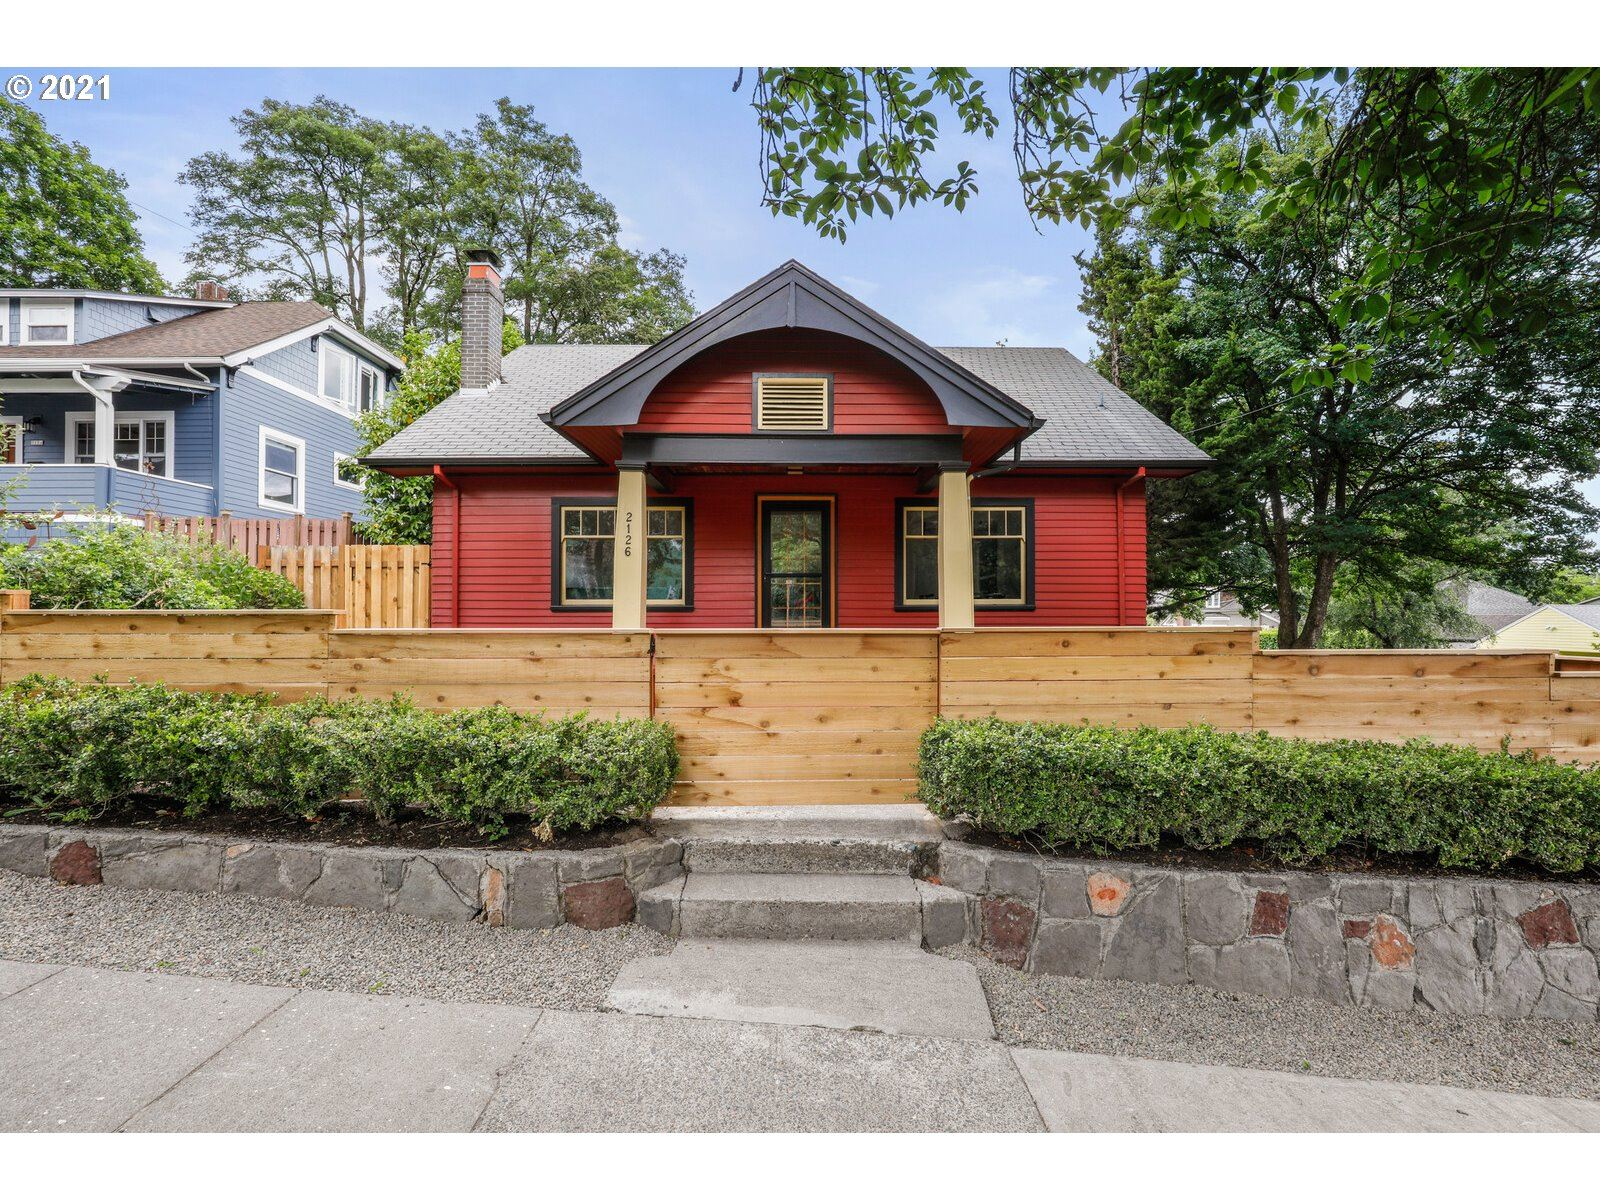 2126 SE 30TH AVE, Portland, OR 97214 - MLS#: 21676778